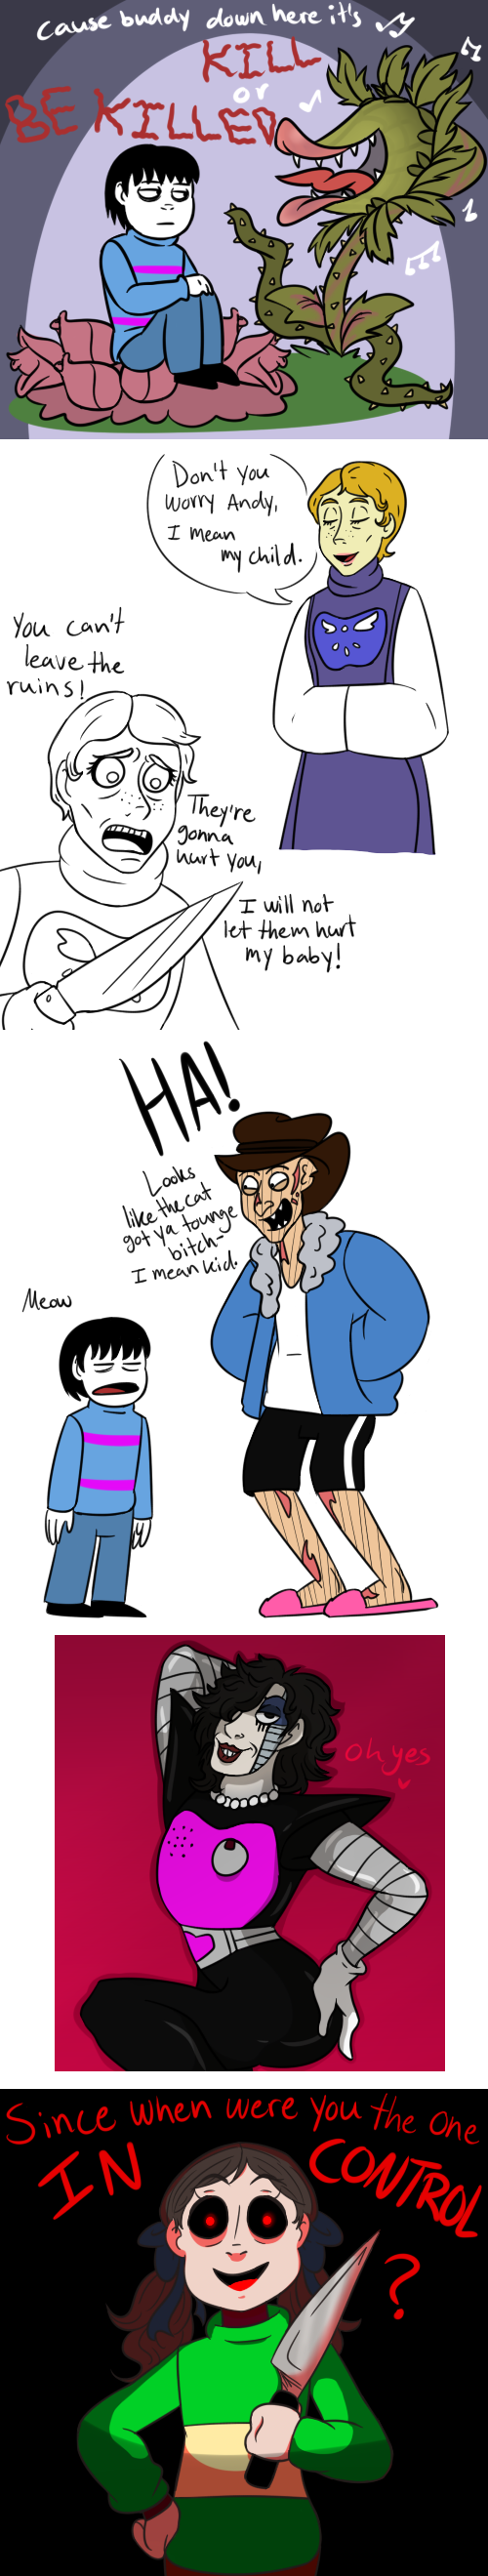 Horror movie characters as Undertale characters AU by Bakhtak on